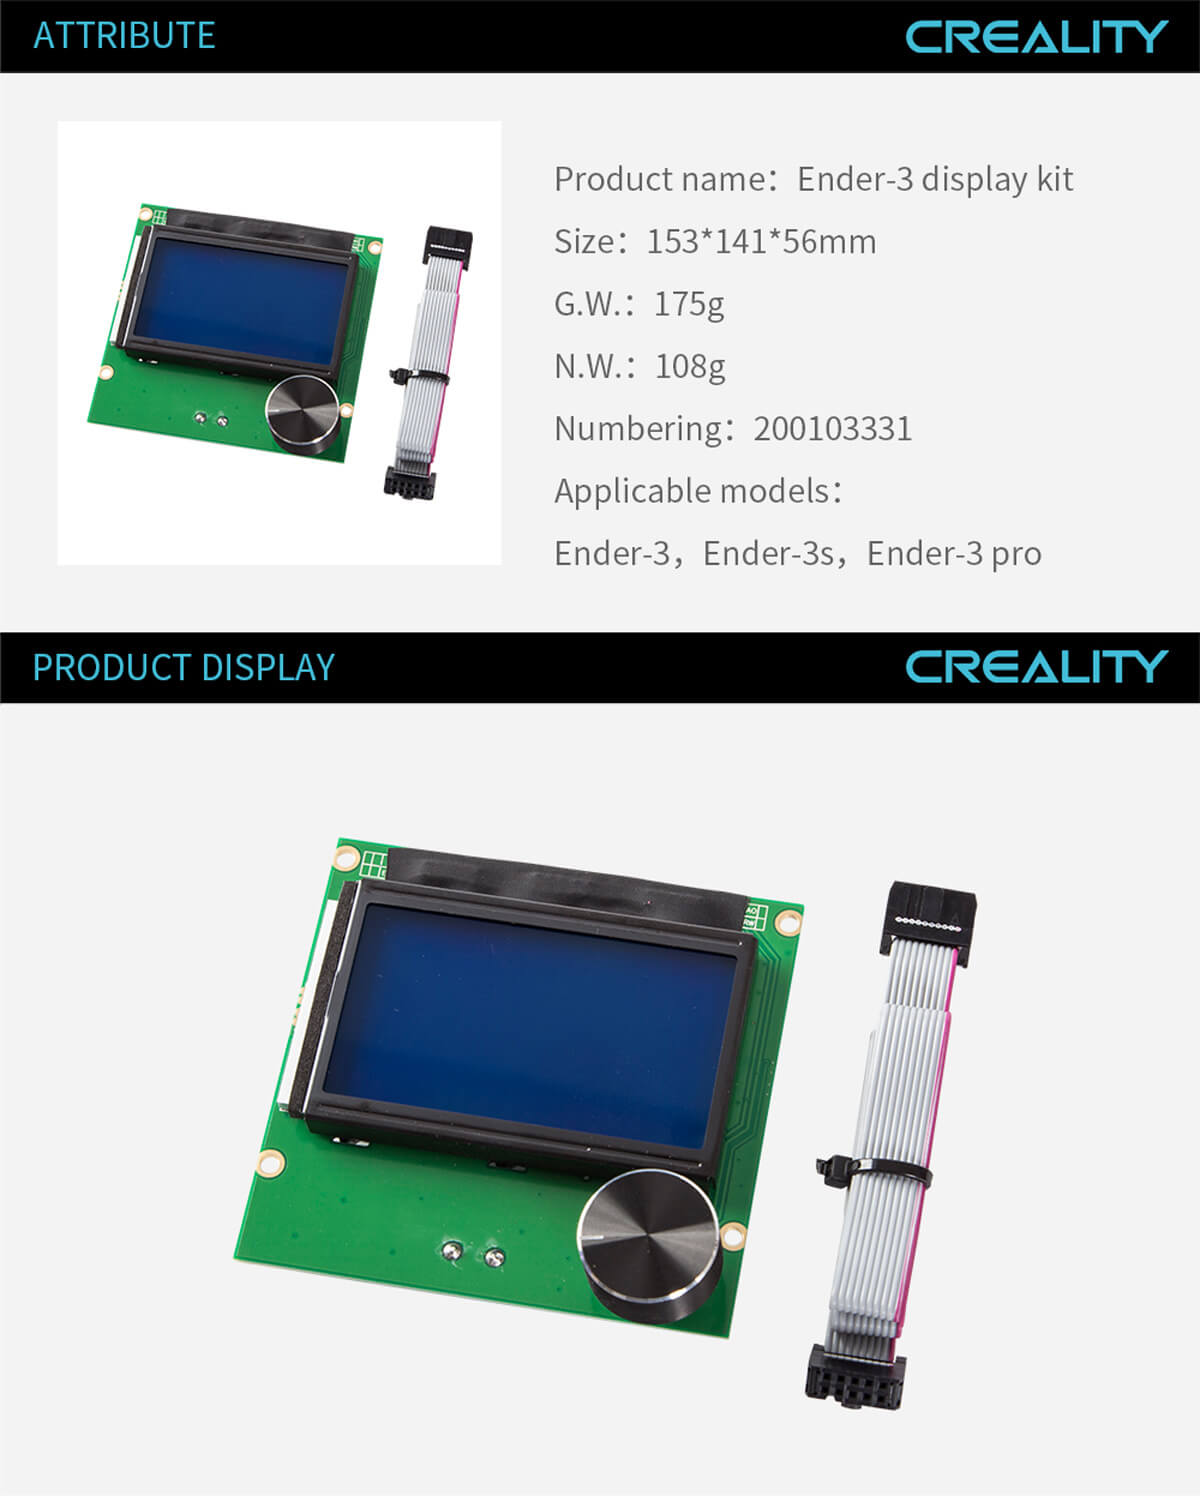 creality-3d-printer-Ender-3-Display-Kit-11